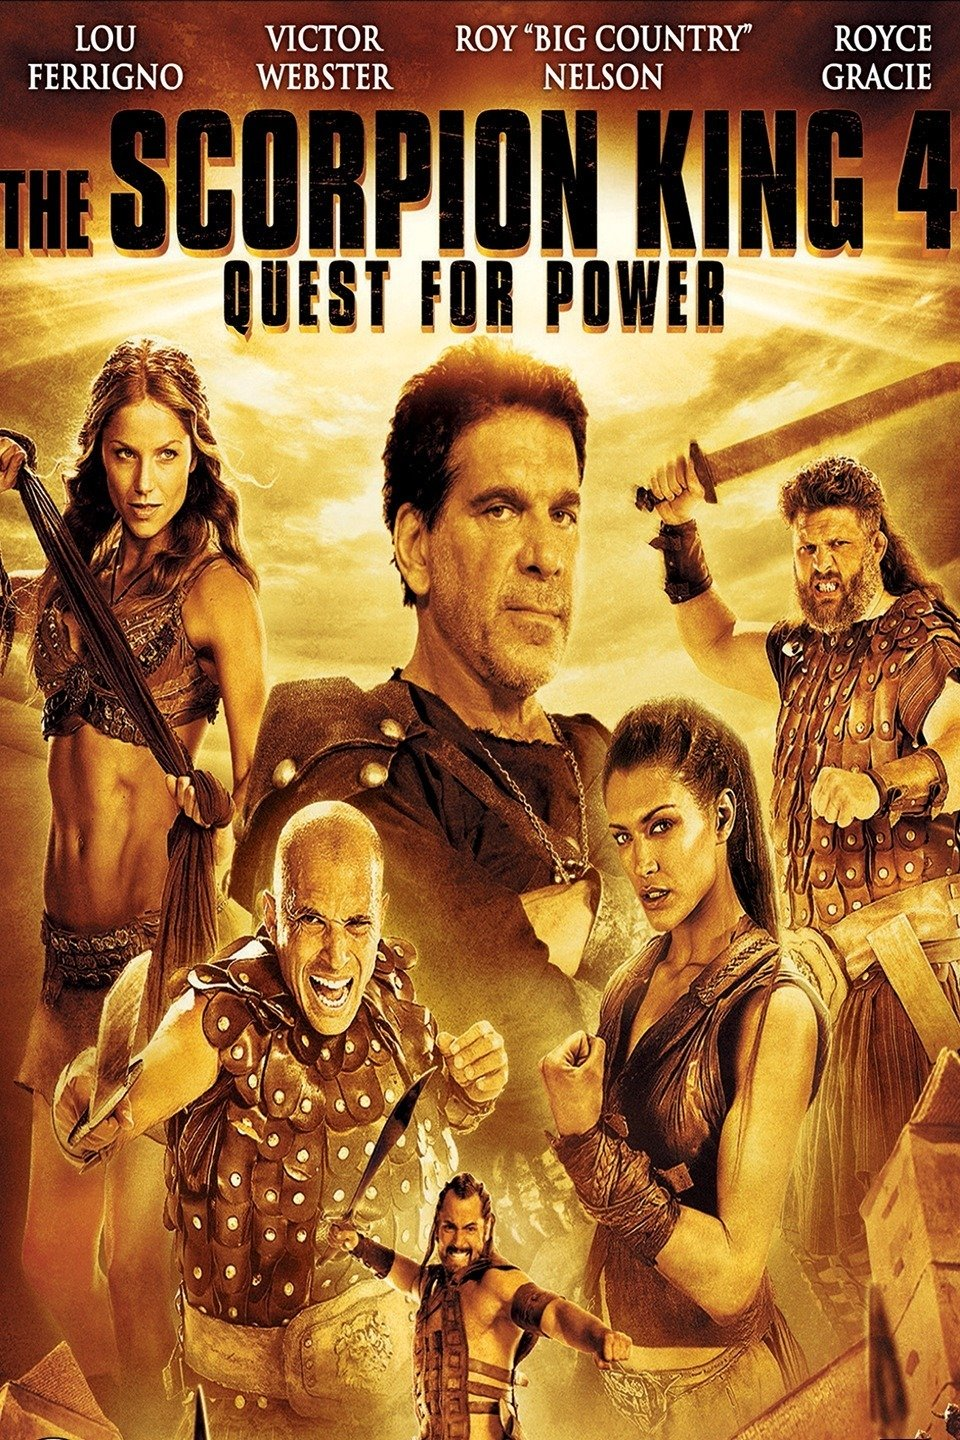 The Scorpion King 4: Quest for Power-The Scorpion King: The Lost Throne